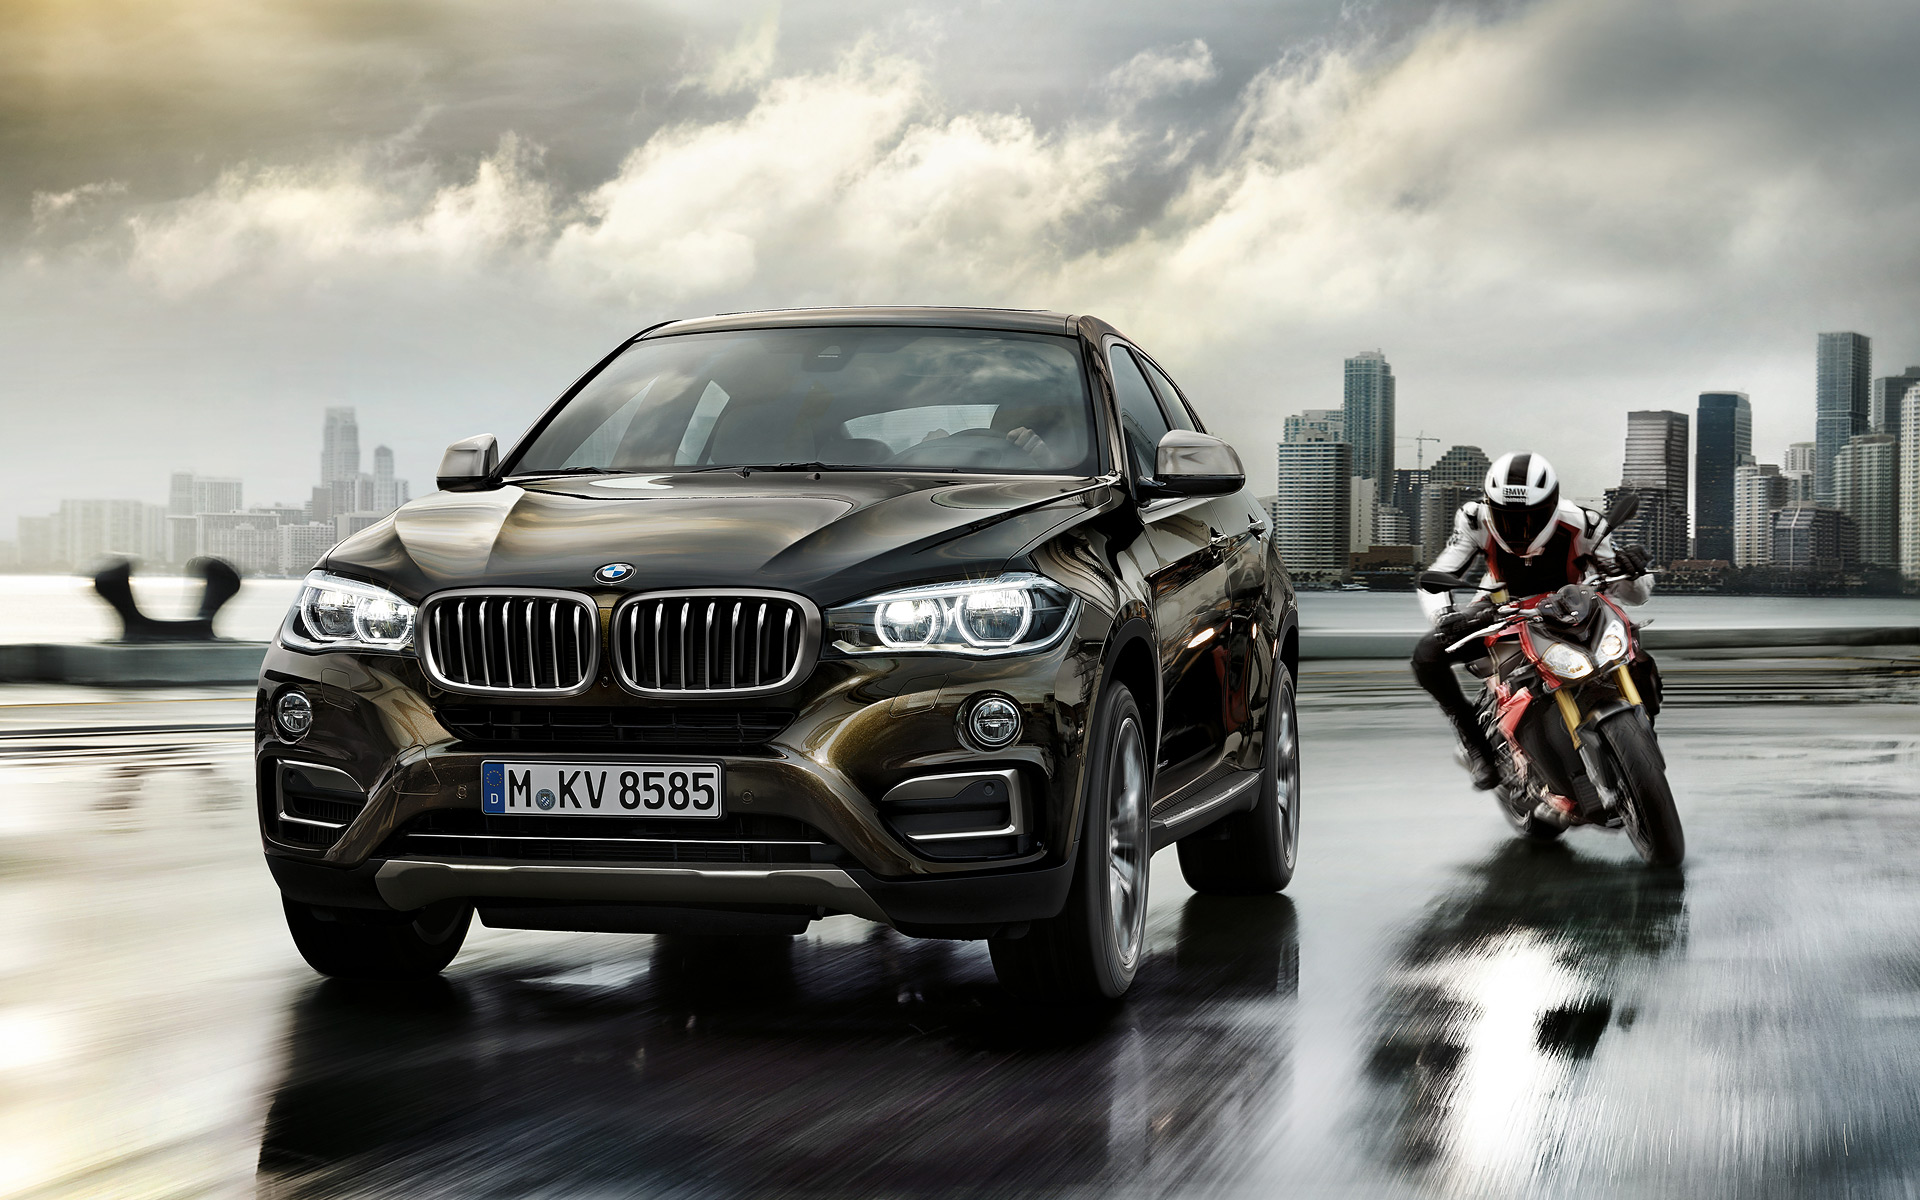 2016 BMW X6 Wallpapers - autoevolution